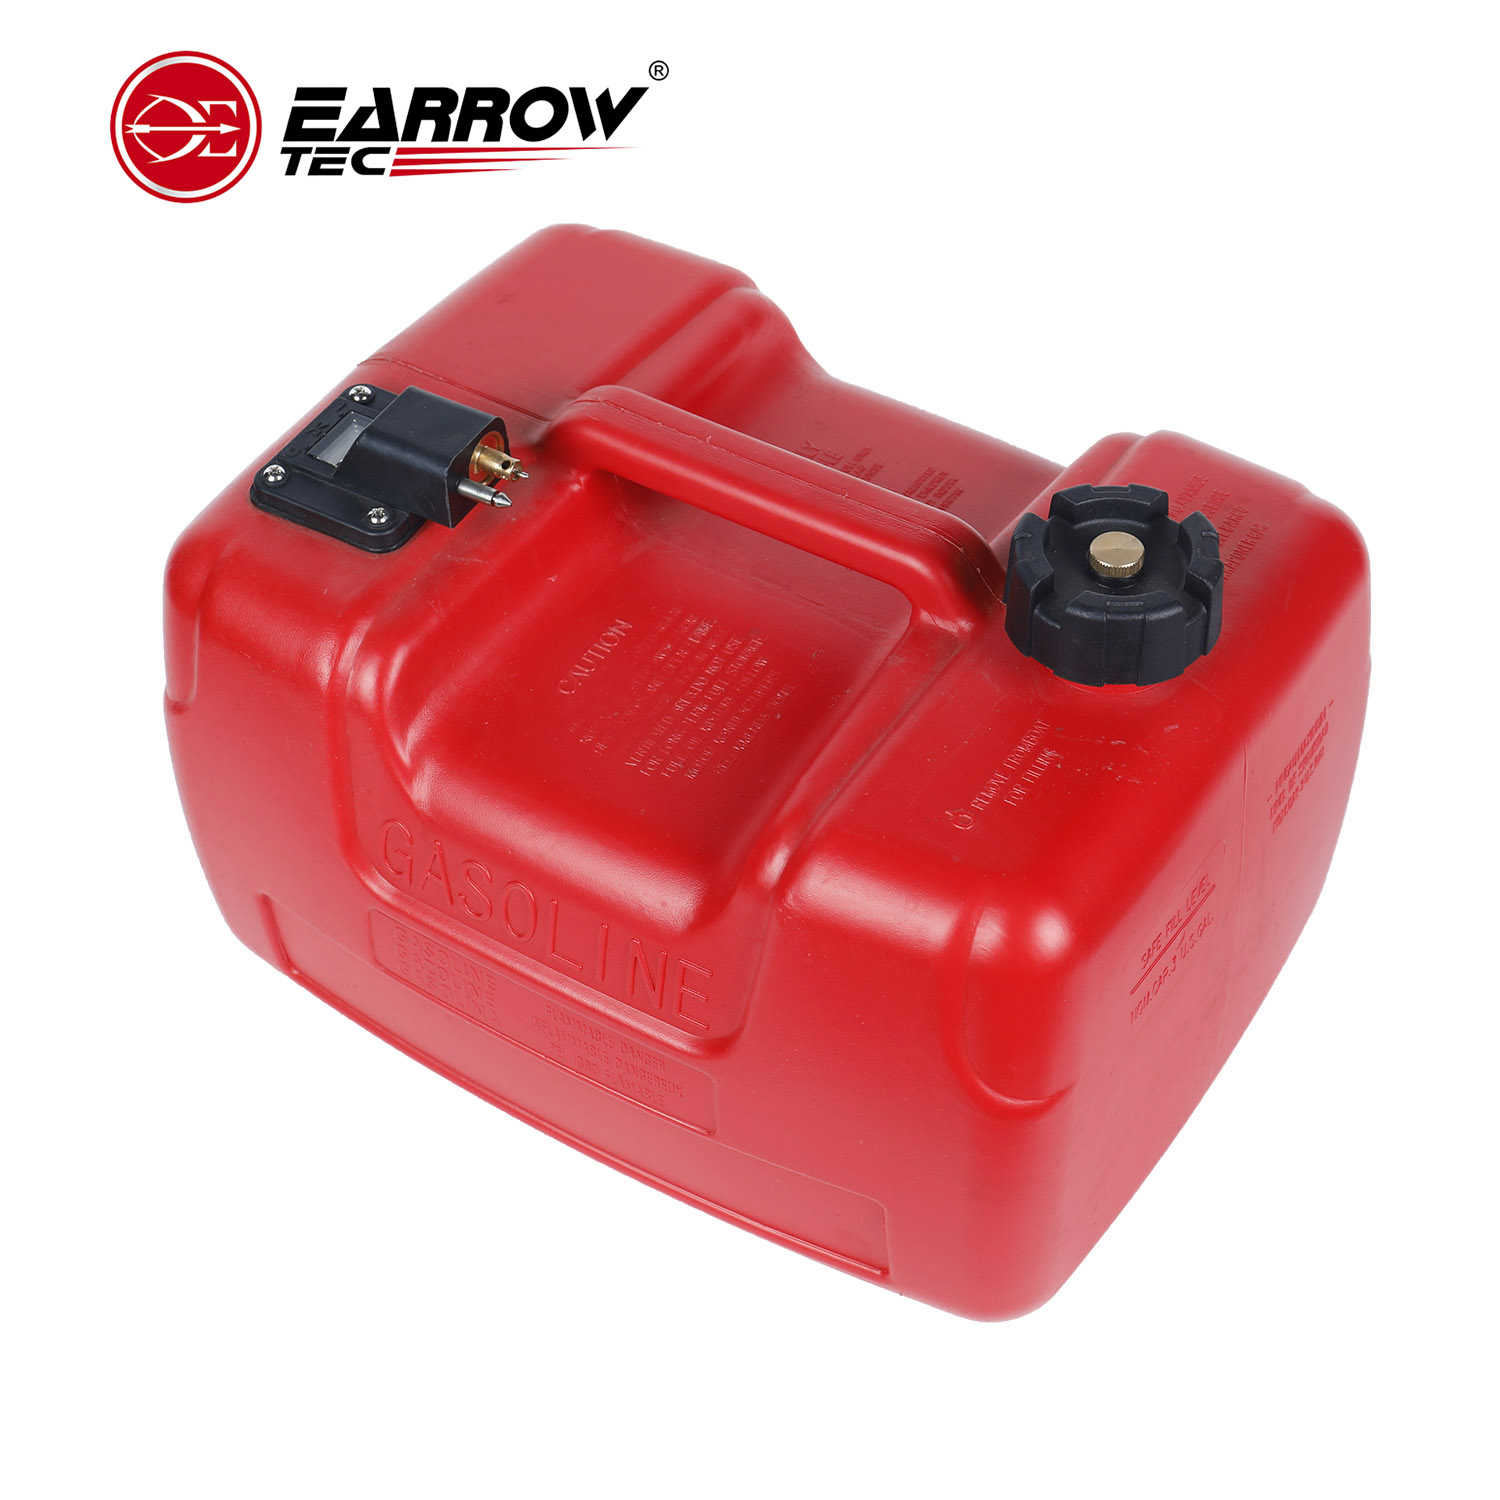 24L Fuel Tank for Outboard Motor Gasoline Storage Outboard Engine Boat Engine